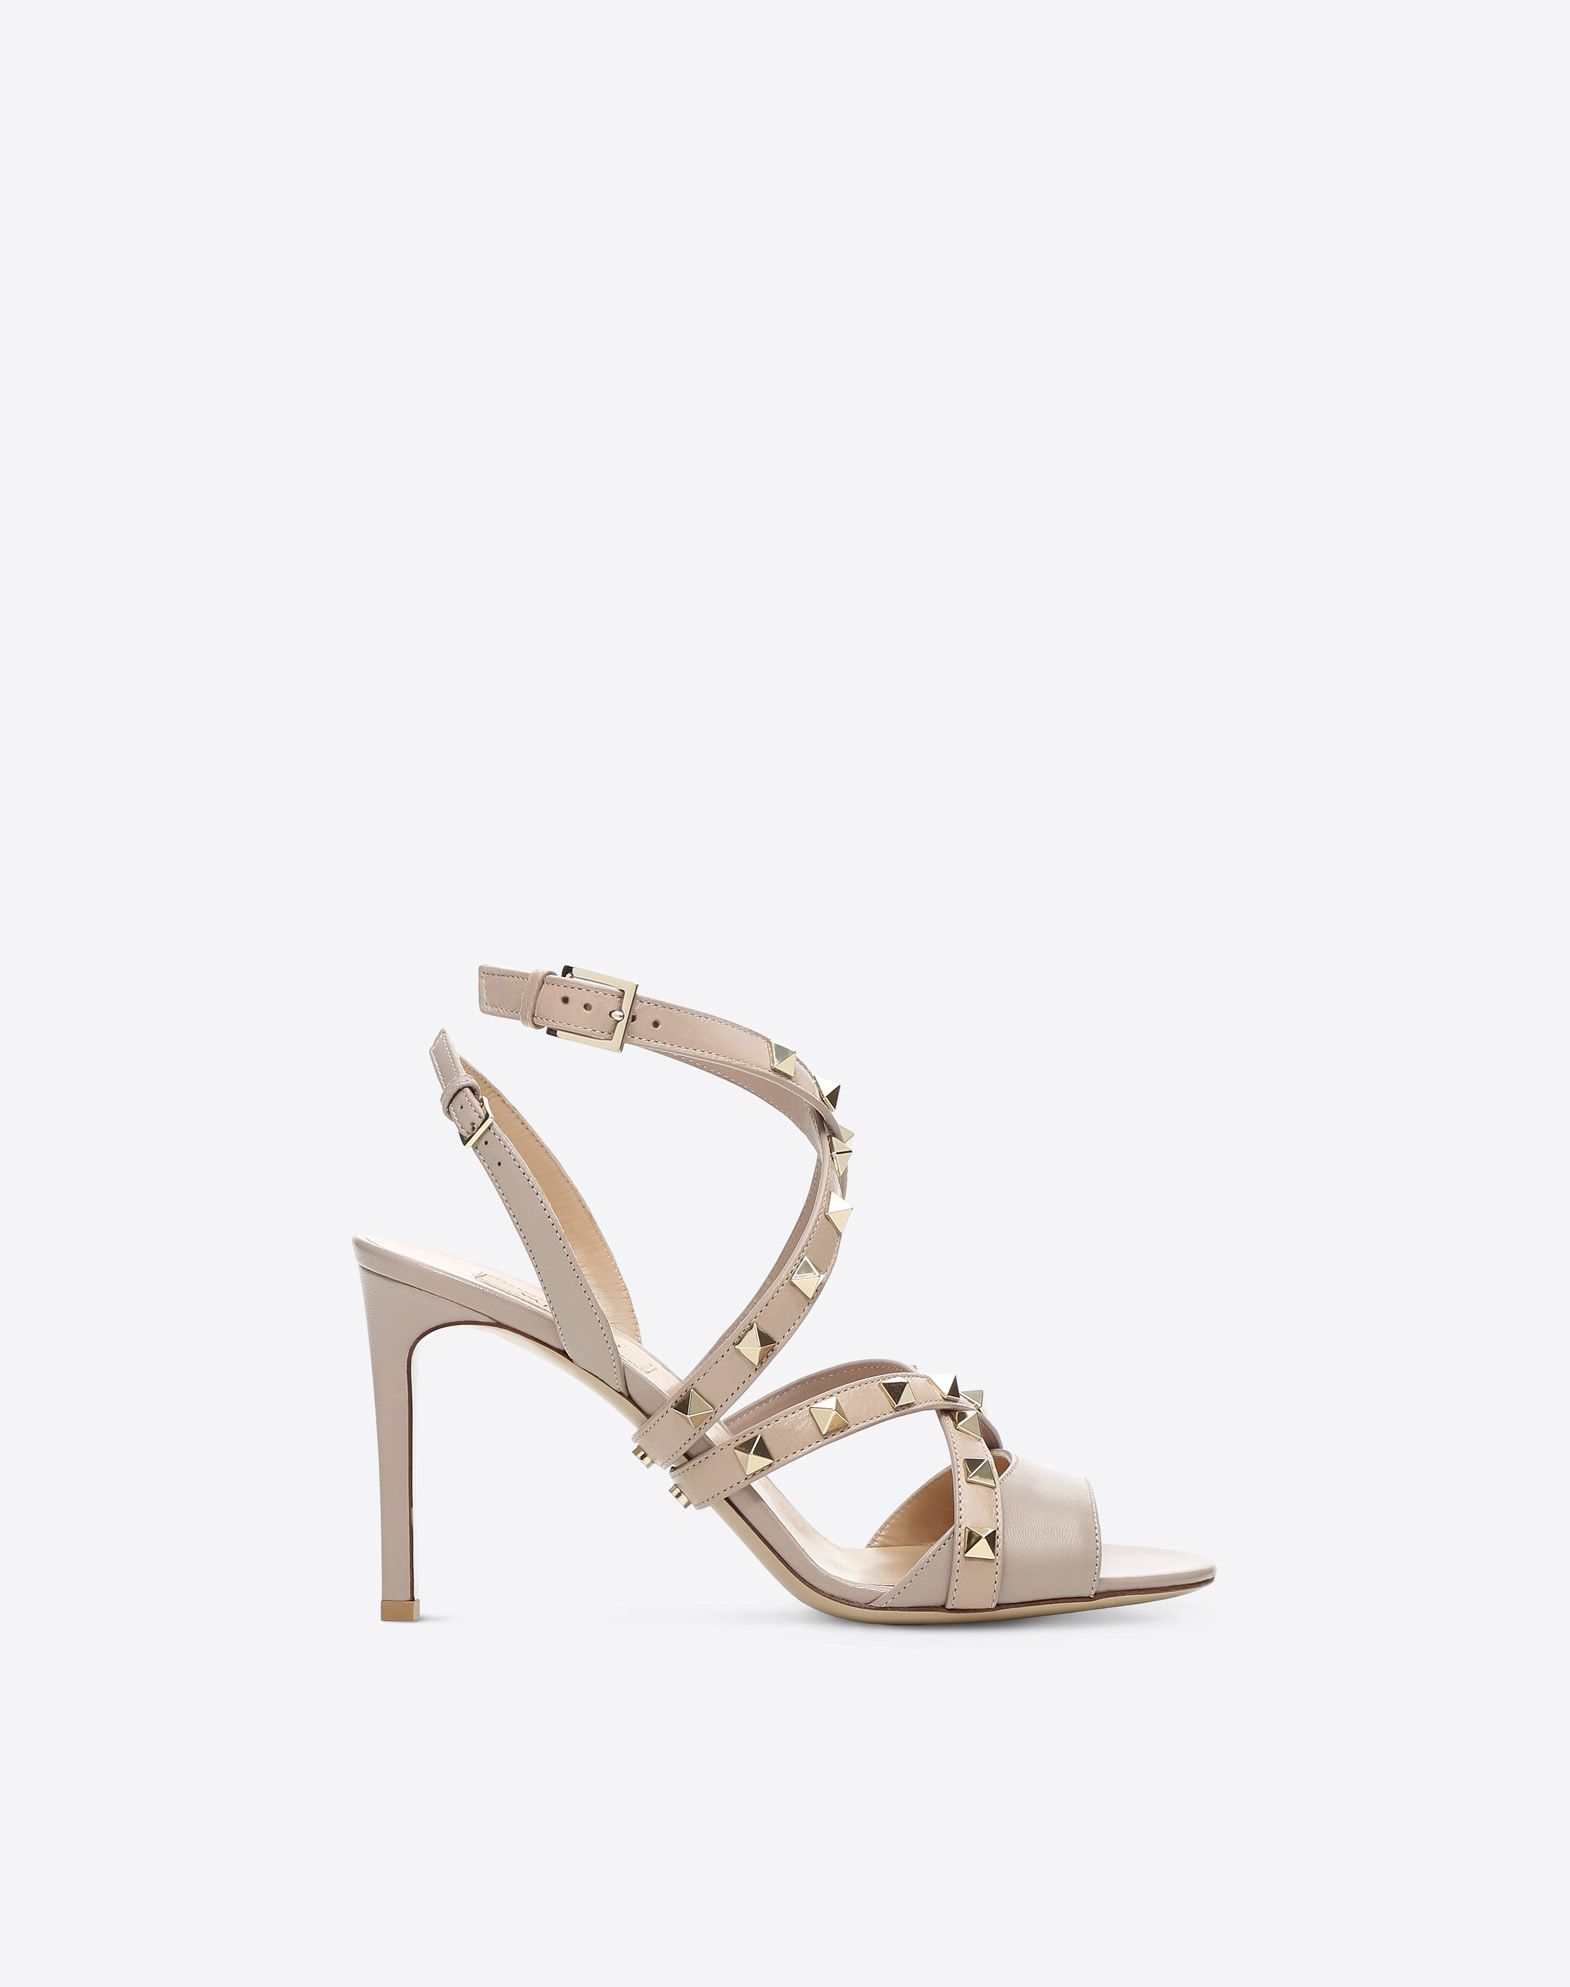 VALENTINO Studded Round toeline Leather sole Buckling ankle strap closure Spike heel  45390915fh